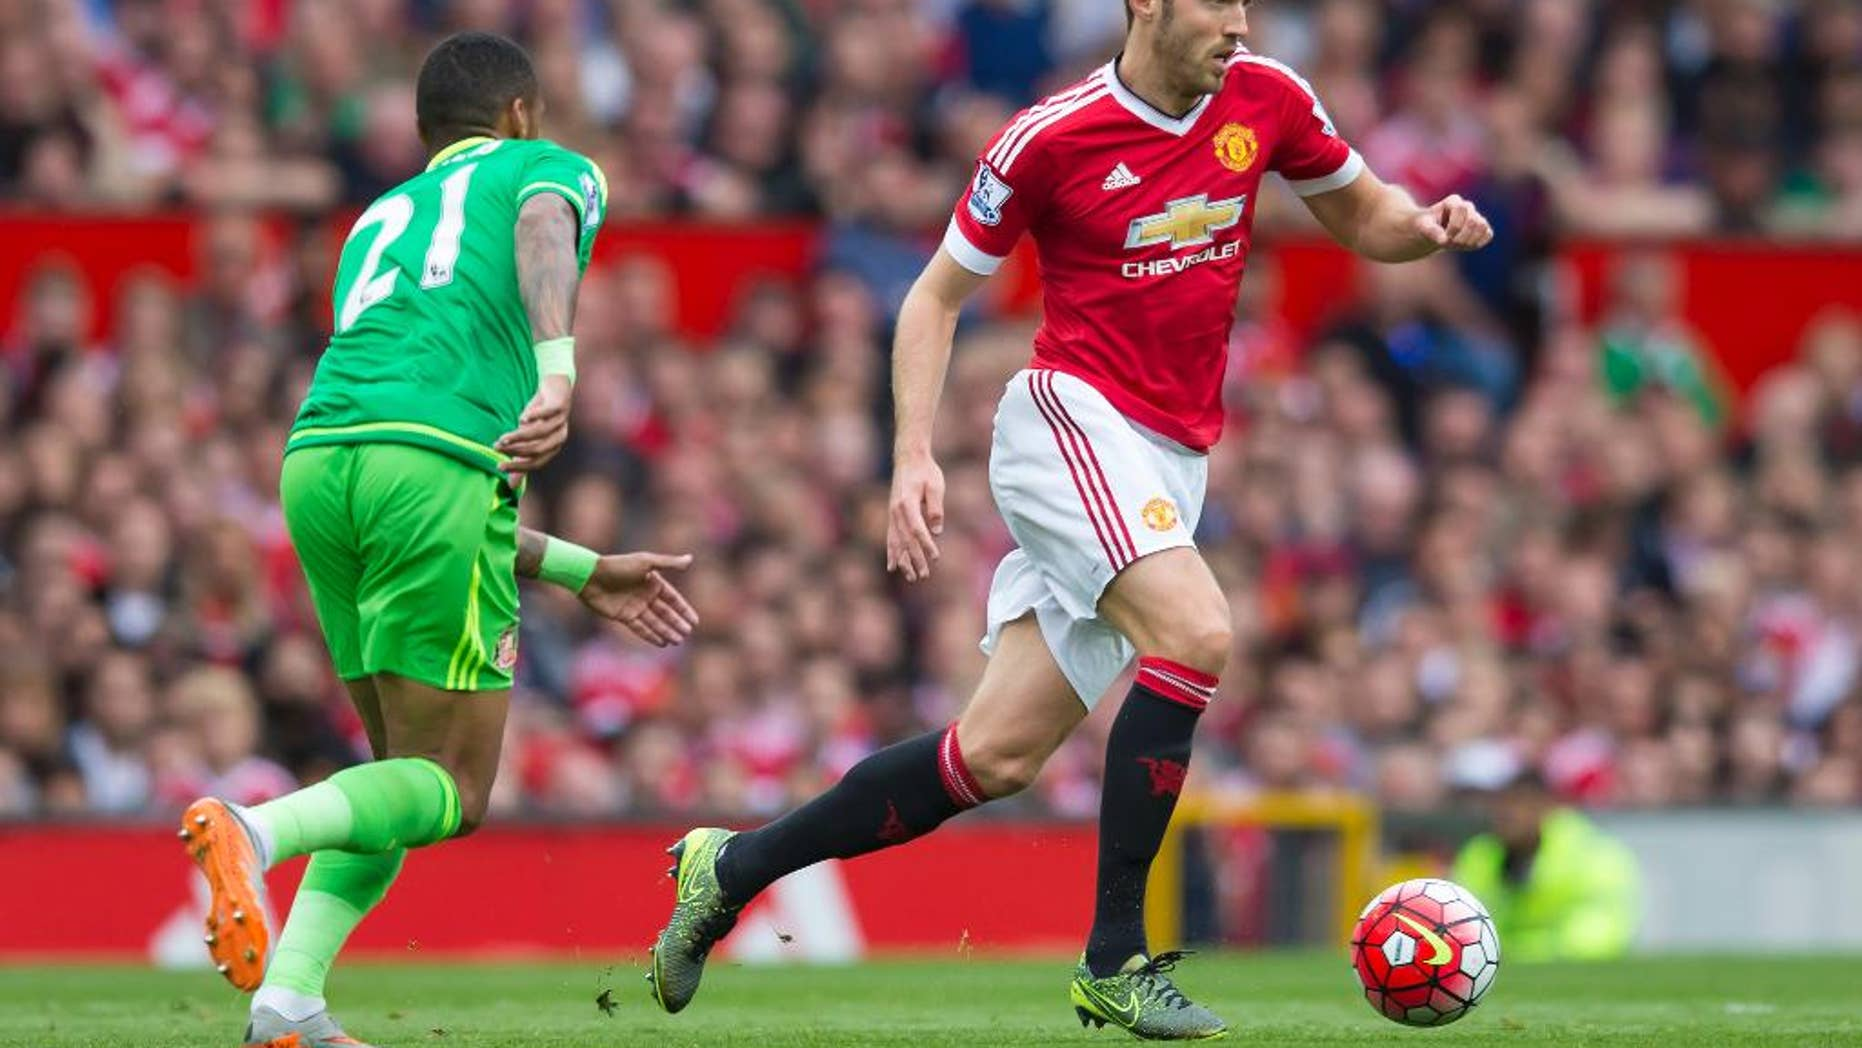 FILE - This is a Saturday, Sept. 26, 2015  file photo of Manchester United's Michael Carrick, right, as he fights for the ball against Sunderland's Yann M'Vila during the English Premier League soccer match between Manchester United and Sunderland at Old Trafford Stadium, Manchester, England.  Amid the likely rotation during the 2016 busy festive program in the Premier League, there's one player Manchester United fans won't want to see out of the team and that player is Michael Carrick (AP Photo/Jon Super, File)